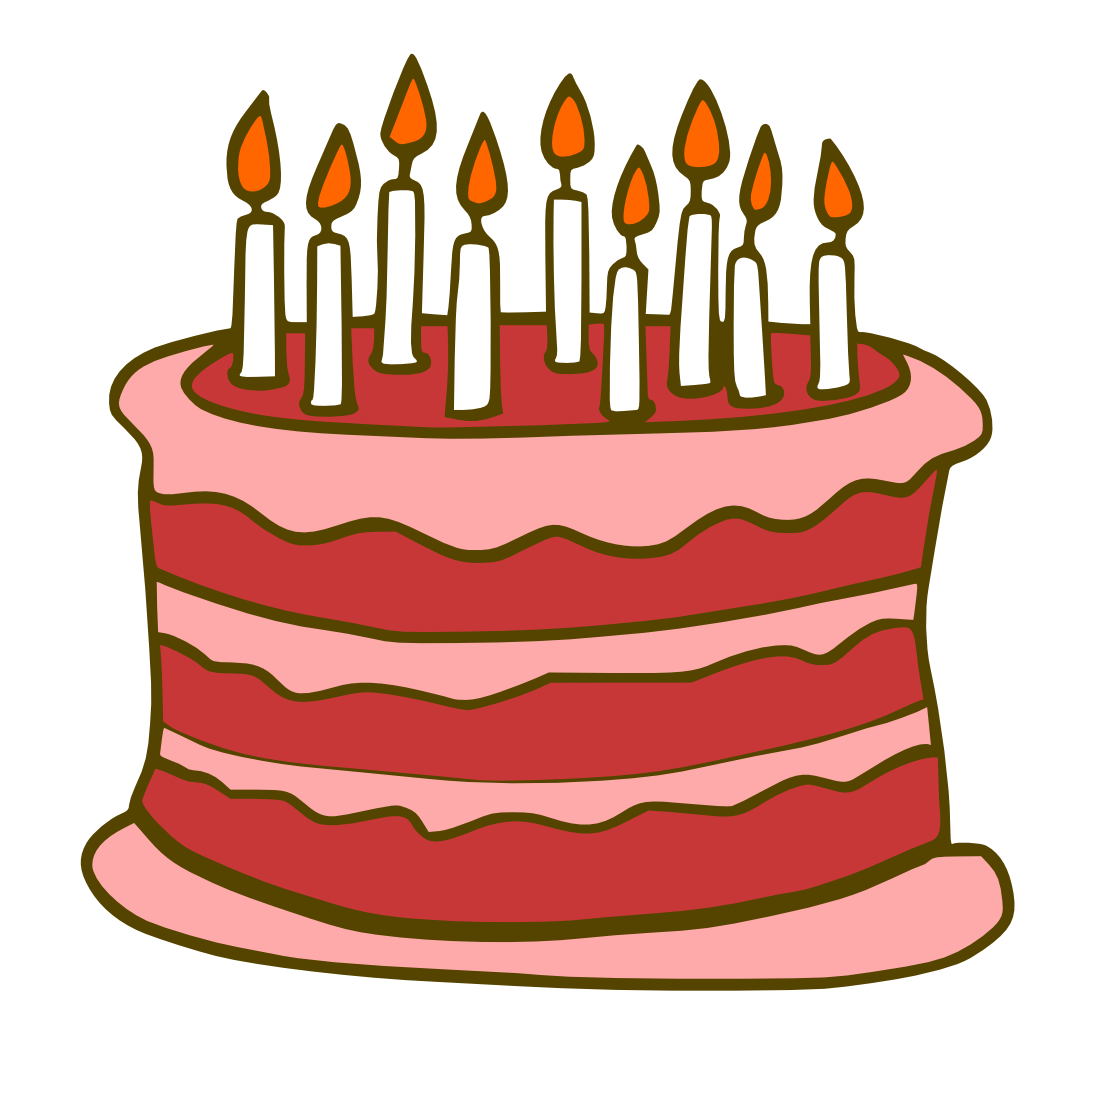 Cake Images In Cartoon : Birthday Cake Graphic - ClipArt Best